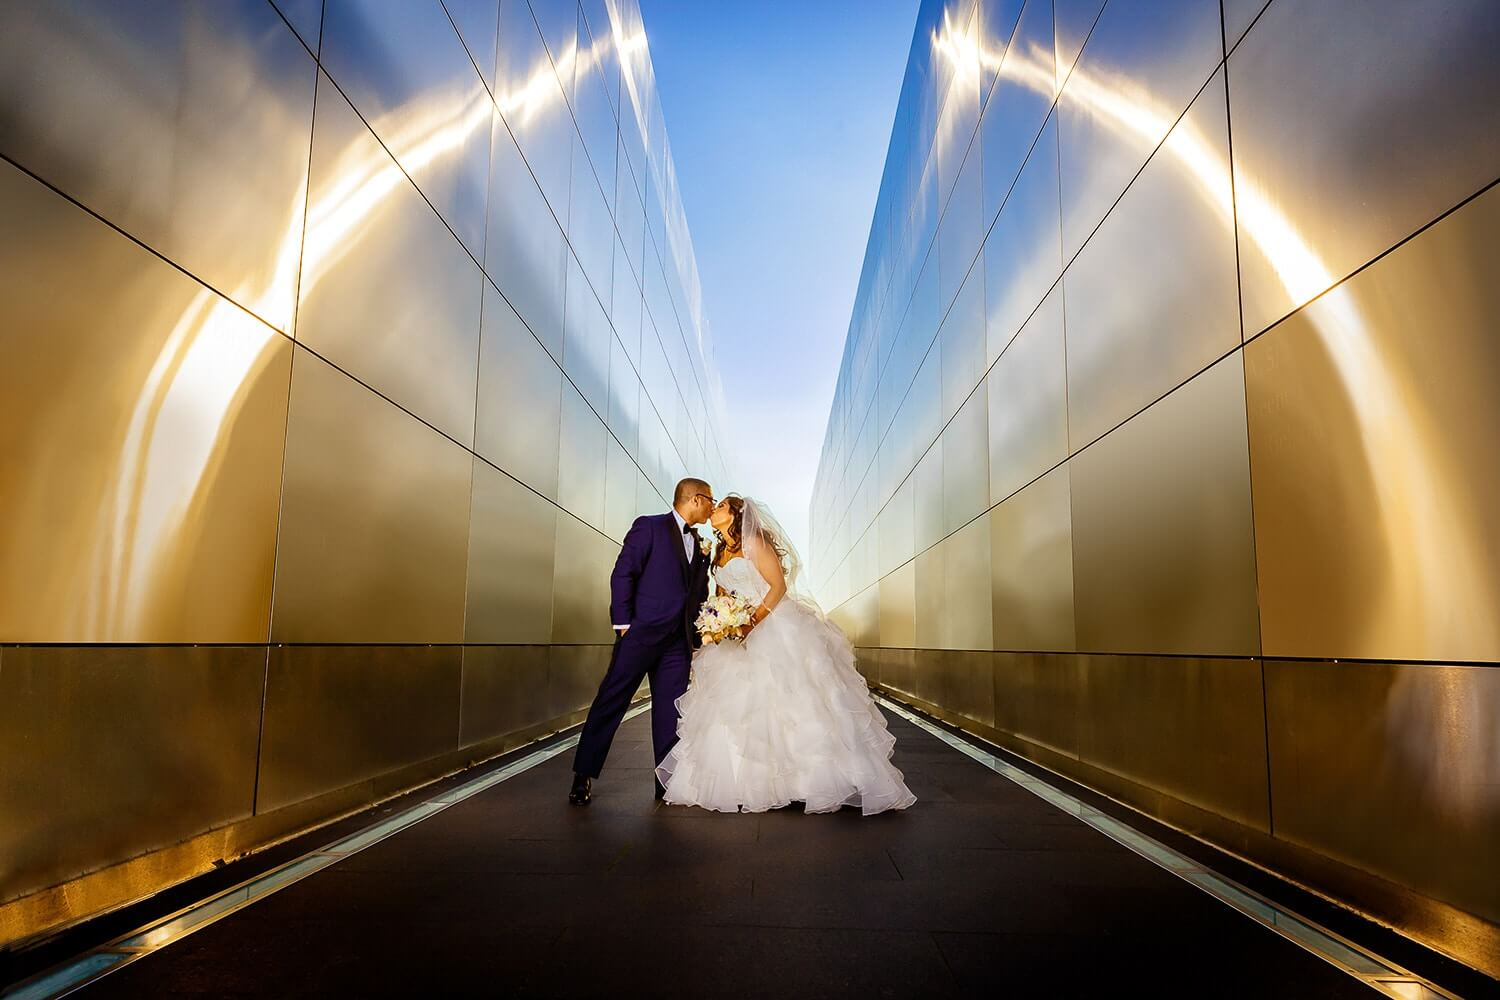 bride and groom at The Memorial at Liberty state park wedding photo New Jersey Wedding Photographer